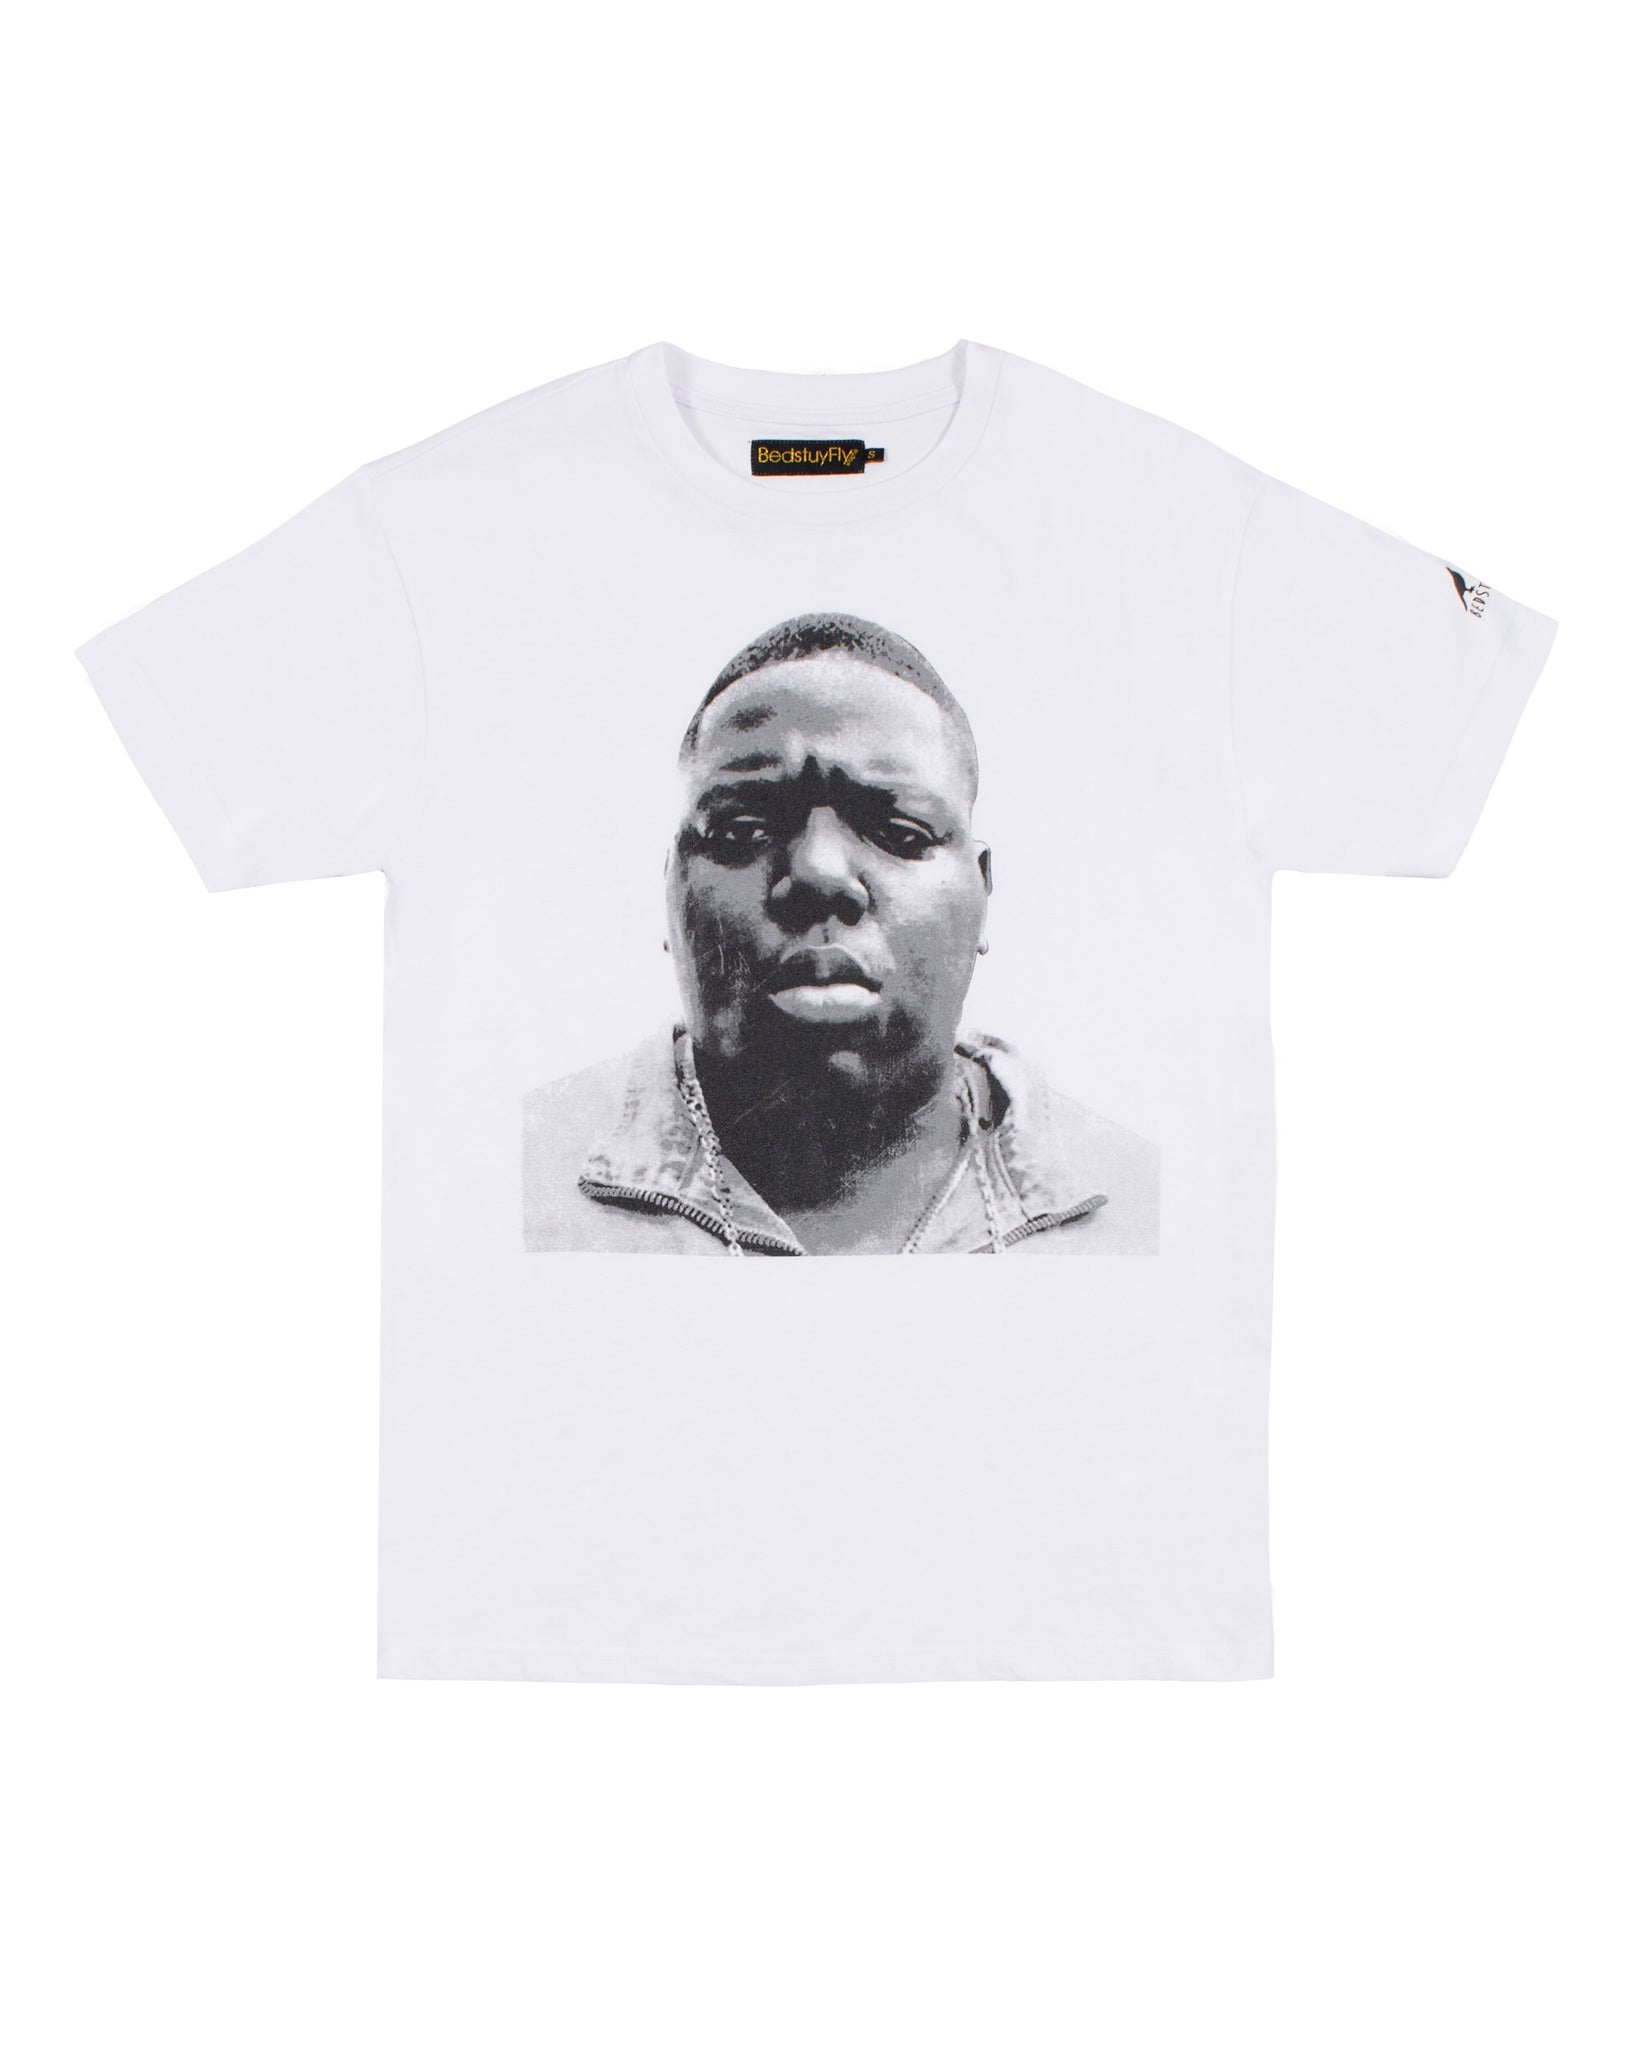 St. James T-Shirt(Wht/Gry)